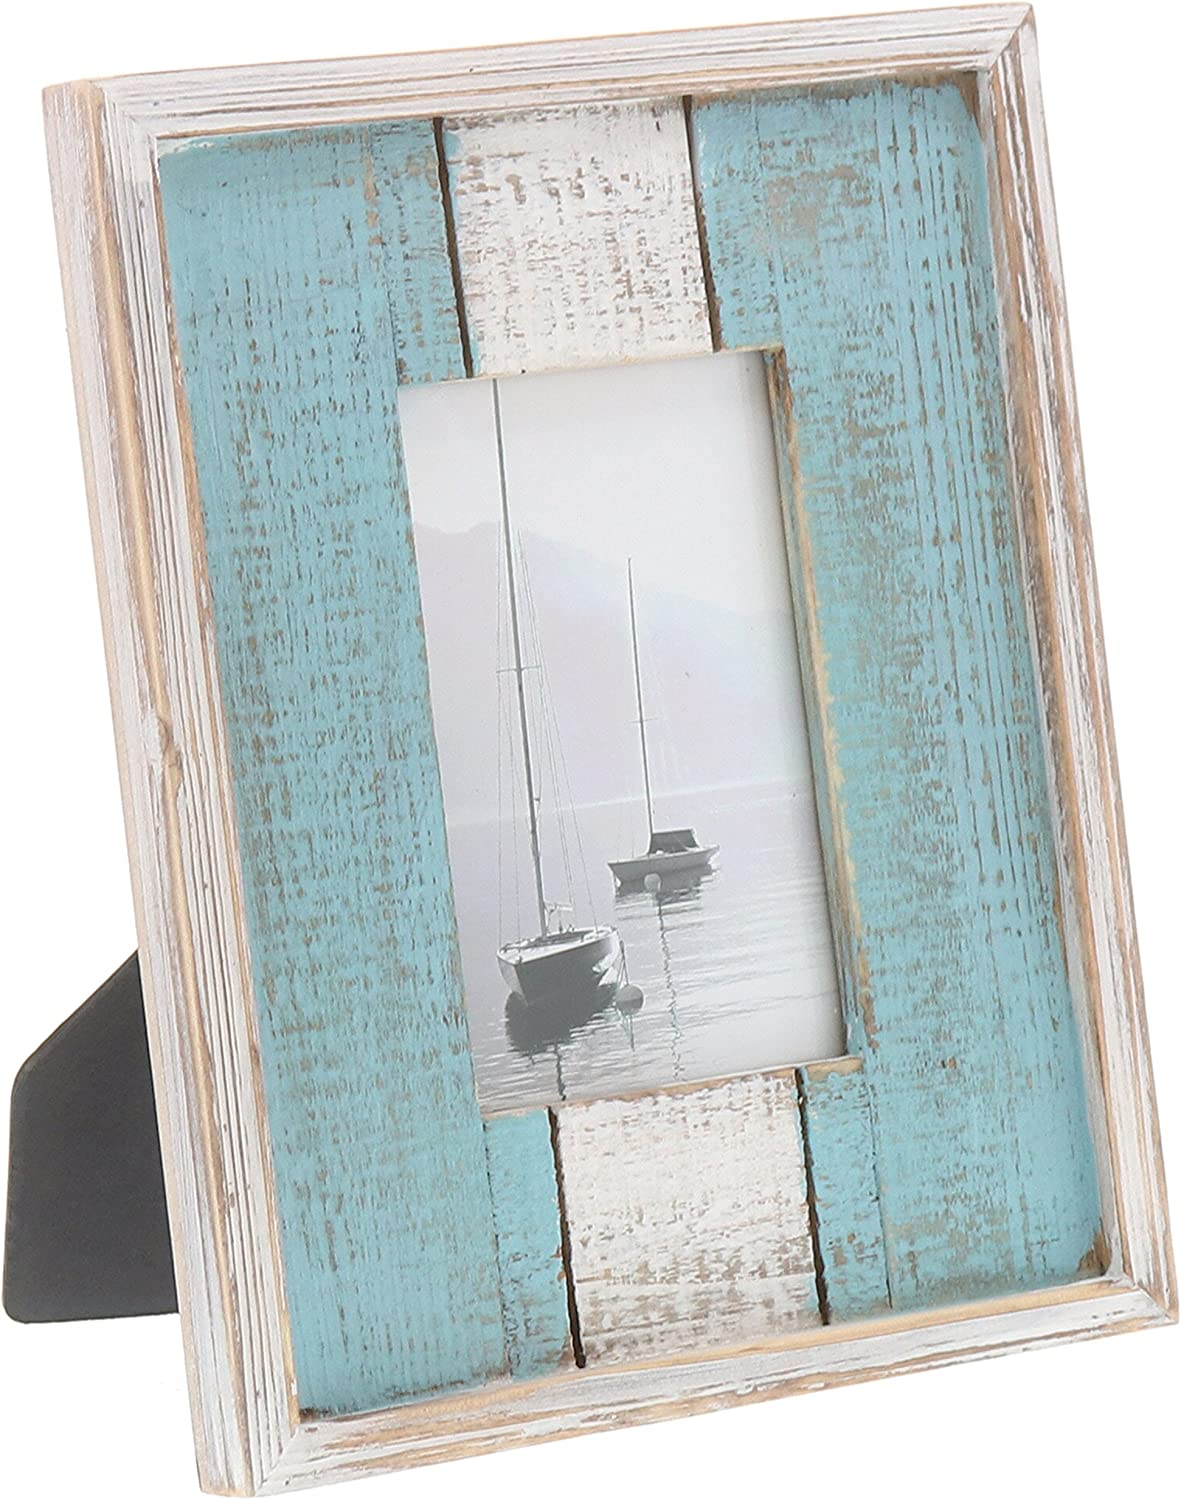 Rustic Wooden Photo Frames Original Barnwood Wall Art Weathered Wood Frames Picture Frame IMgalery 4x6 10x15cm Interior Decors Frames